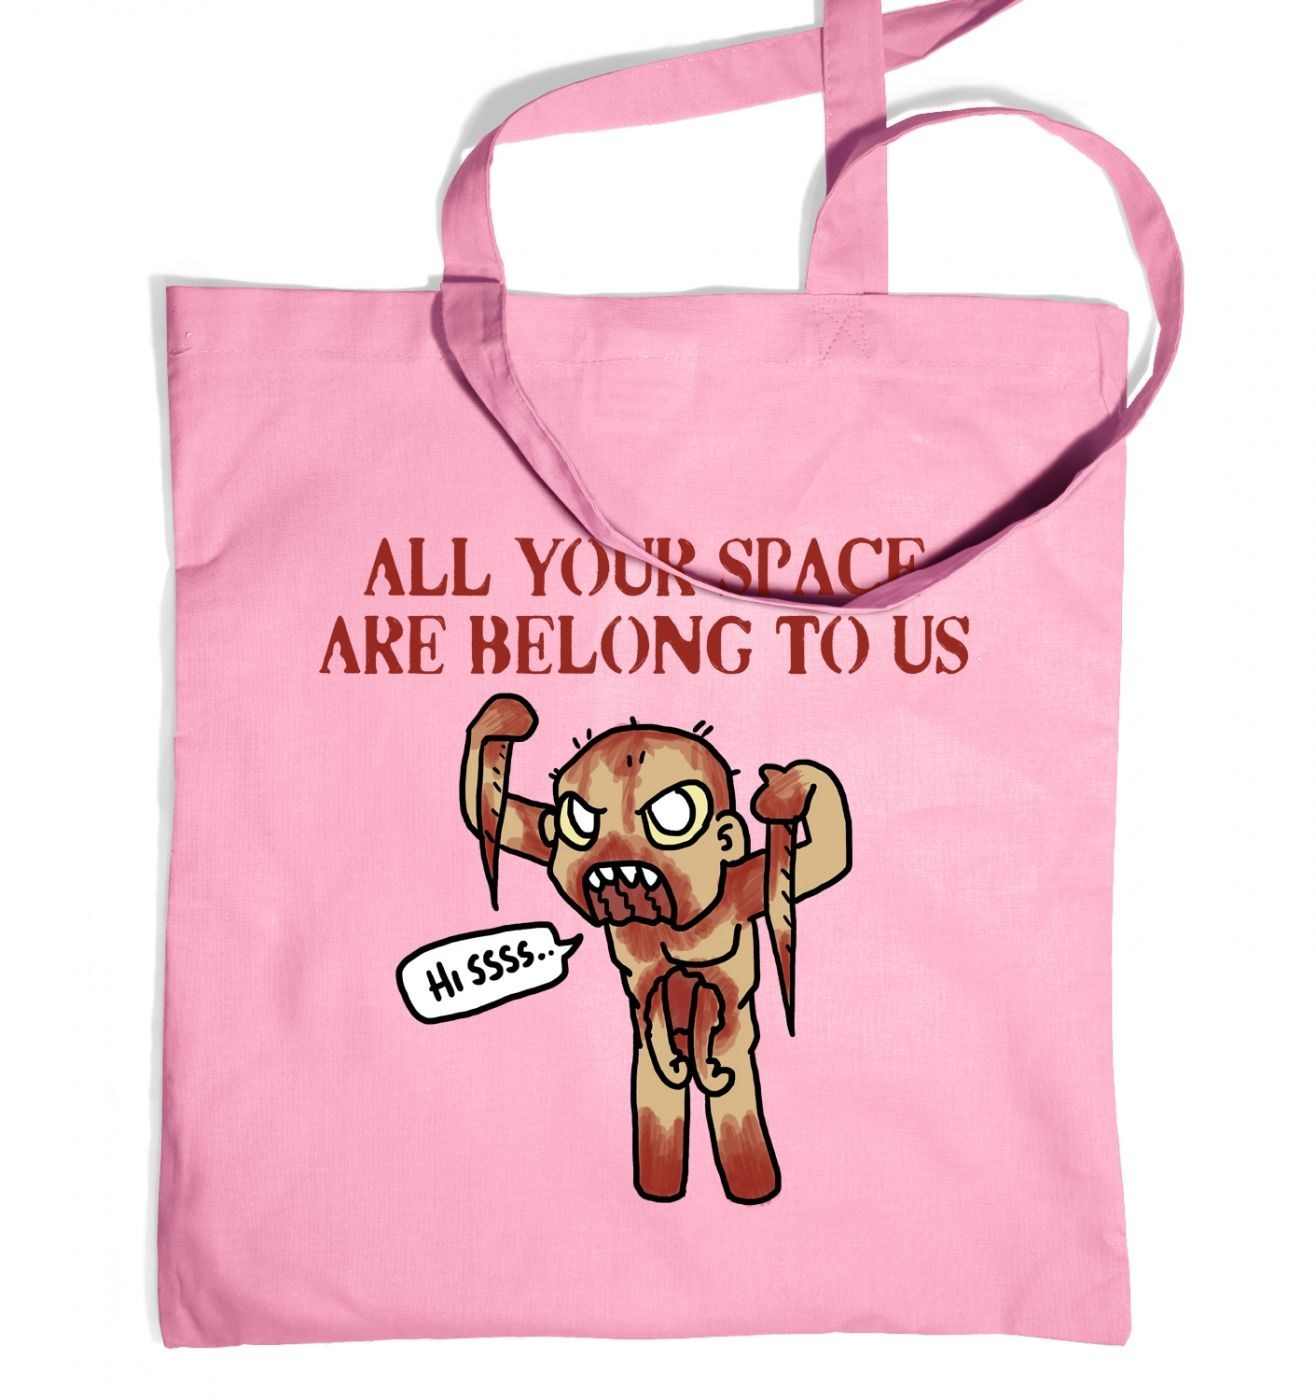 All Your Space tote bag